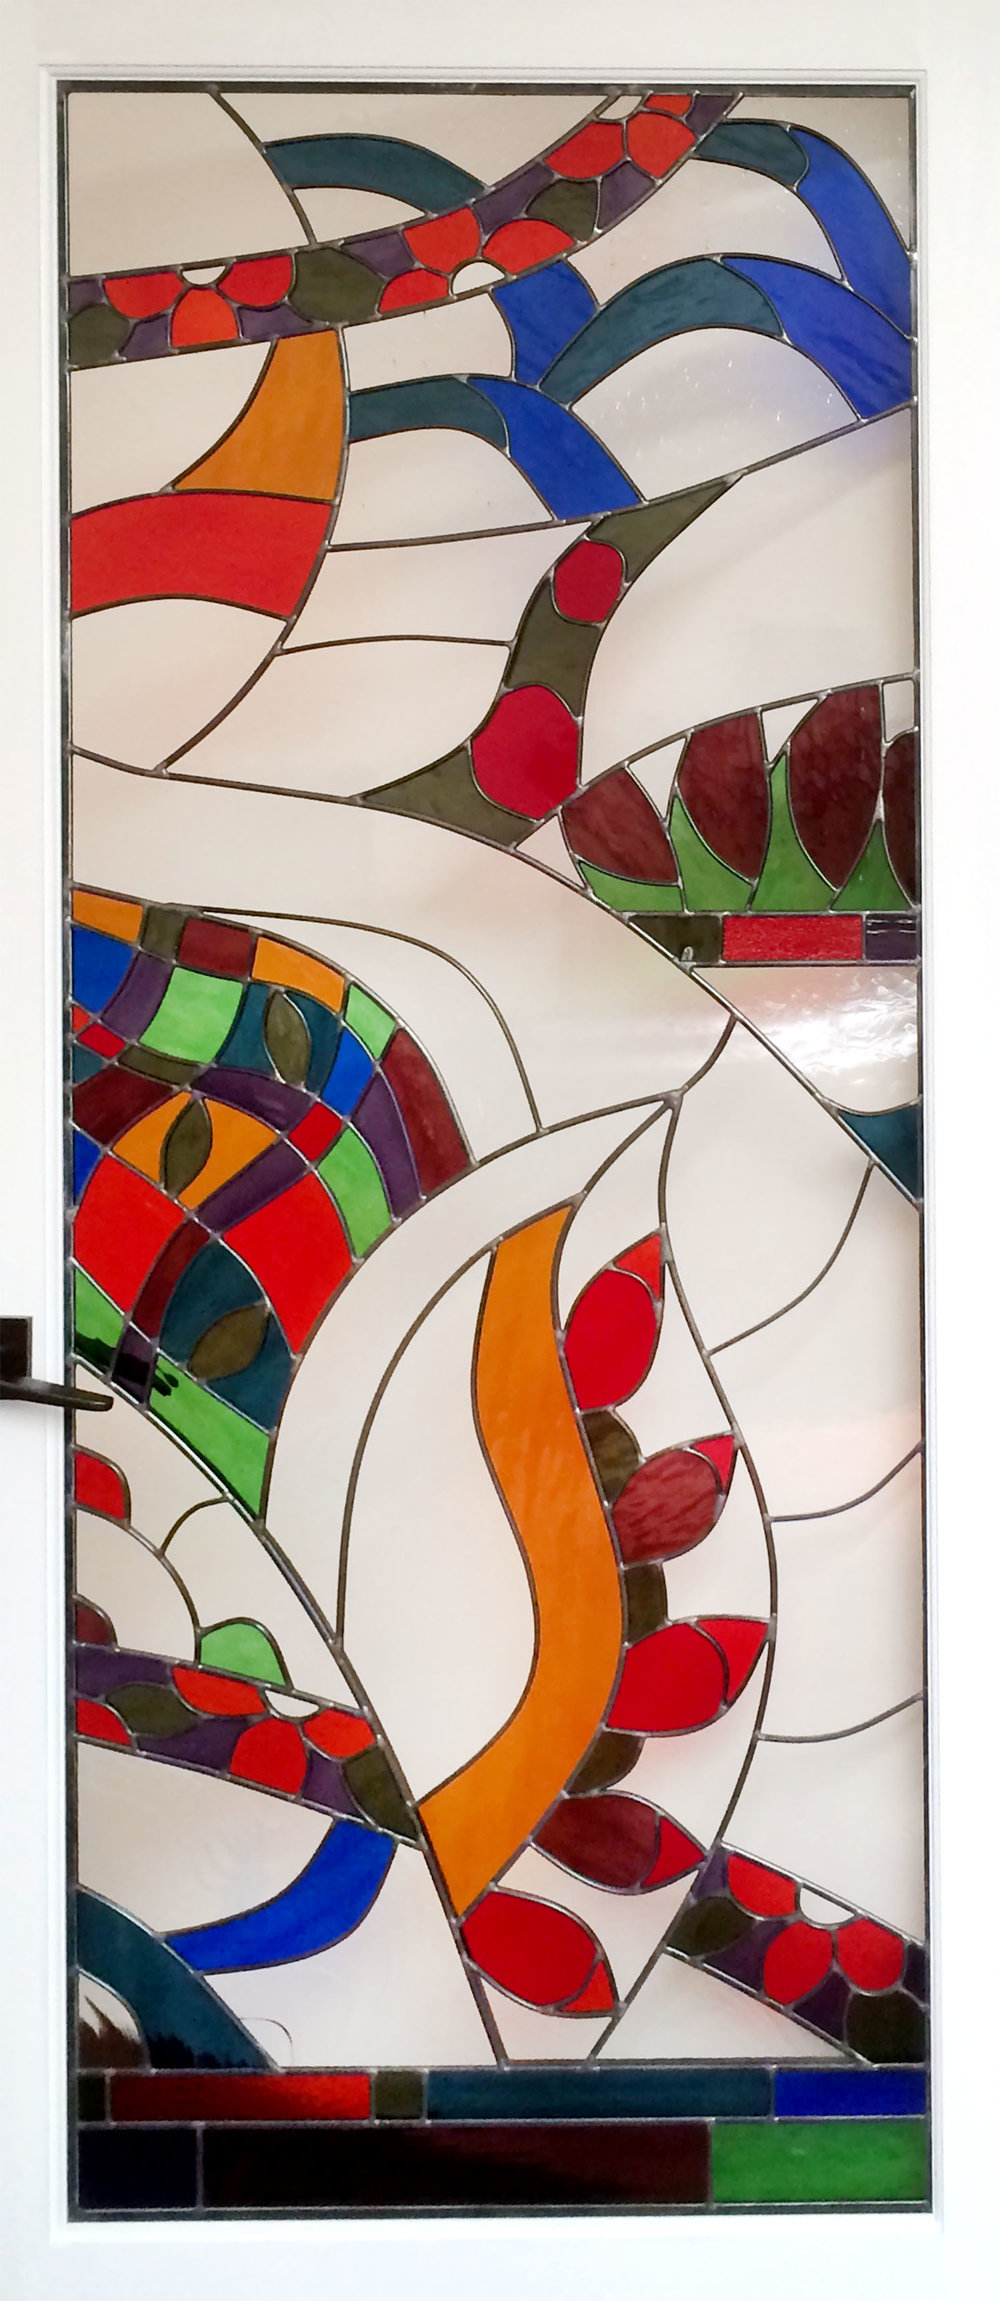 stained glass abstract dragon palo alto atherton menlo park san jose san francisco bay area.jpg